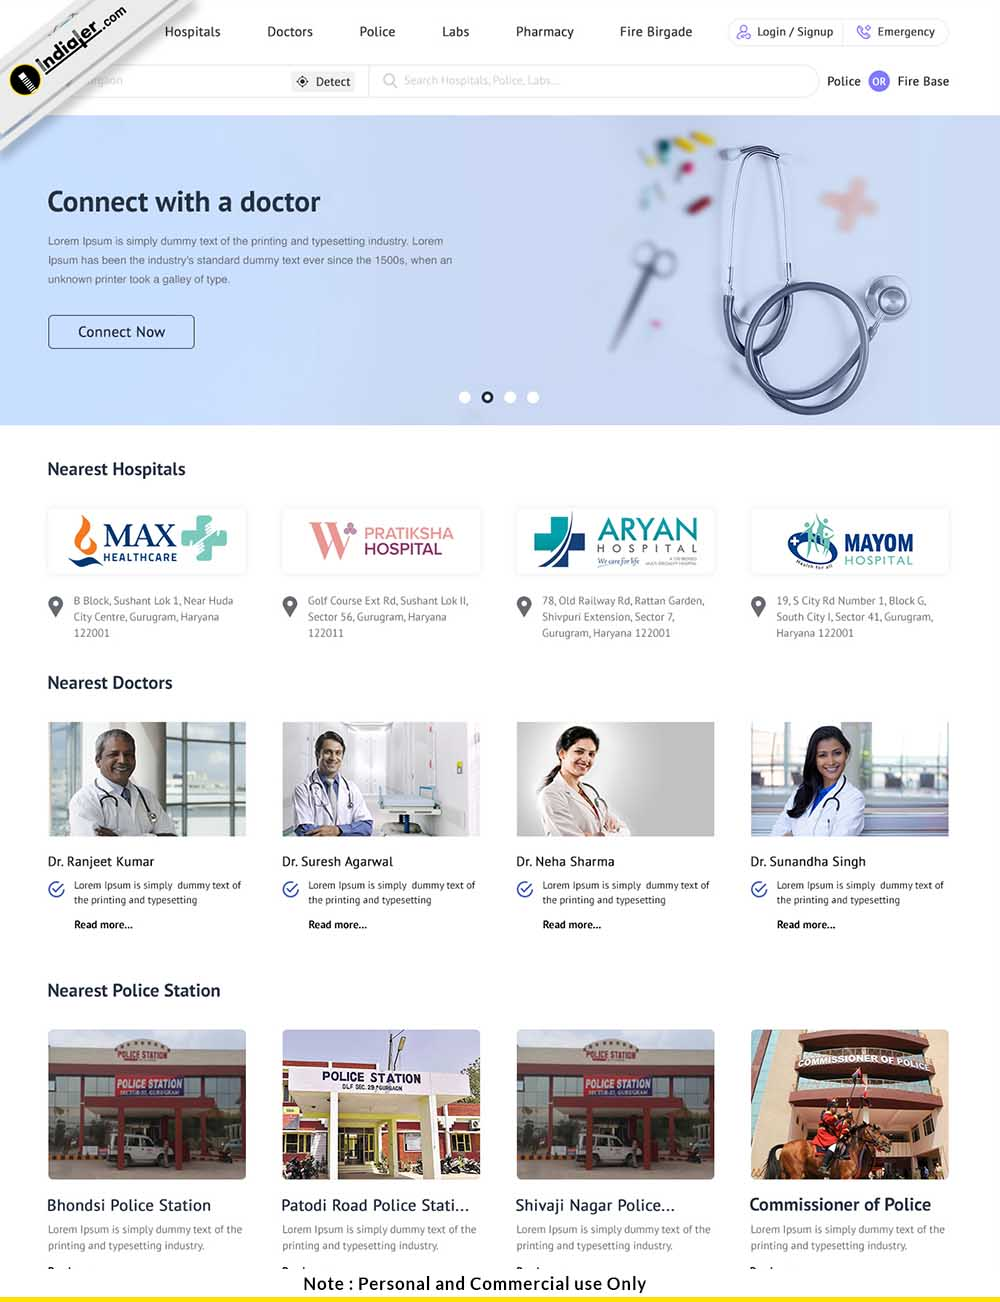 free-download-medical-website-templates-for-photoshop